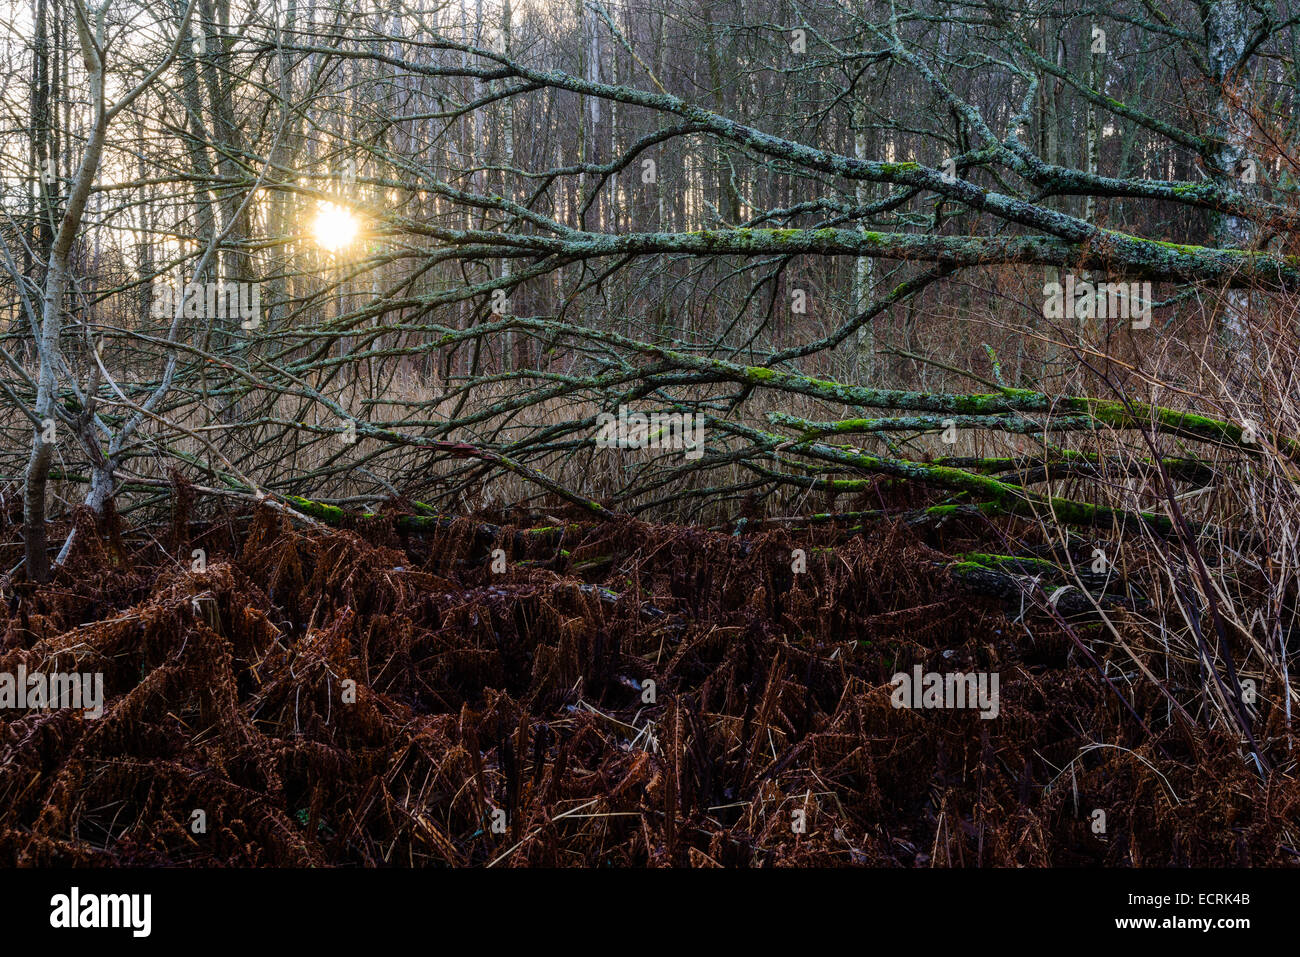 Sunlight through a tangle of branches and undergrowth in a forest Stock Photo